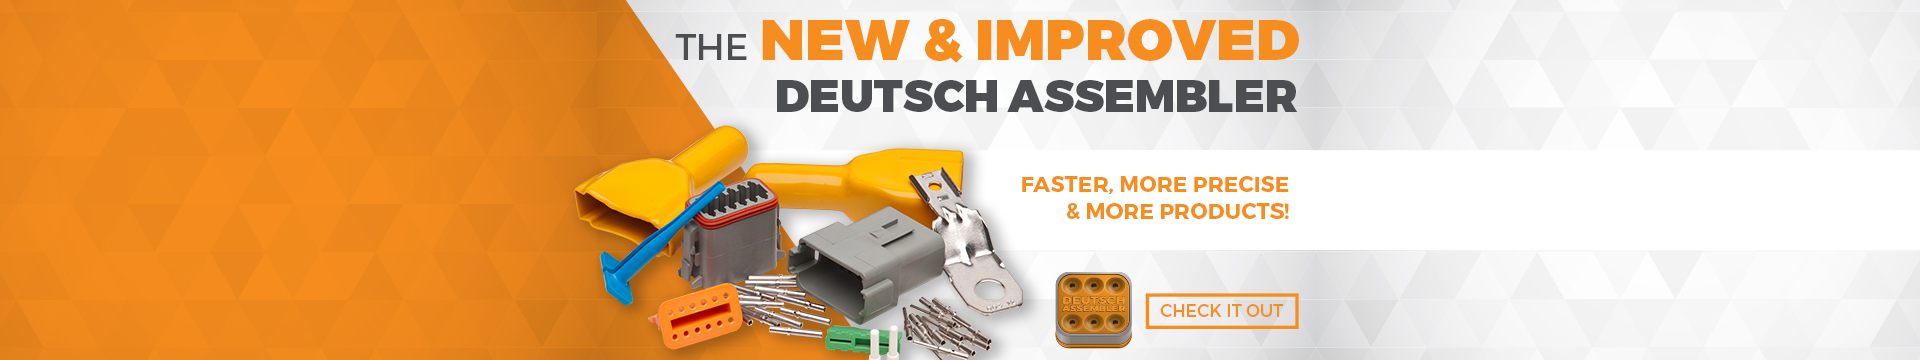 New and Improved Deutsch Assembler